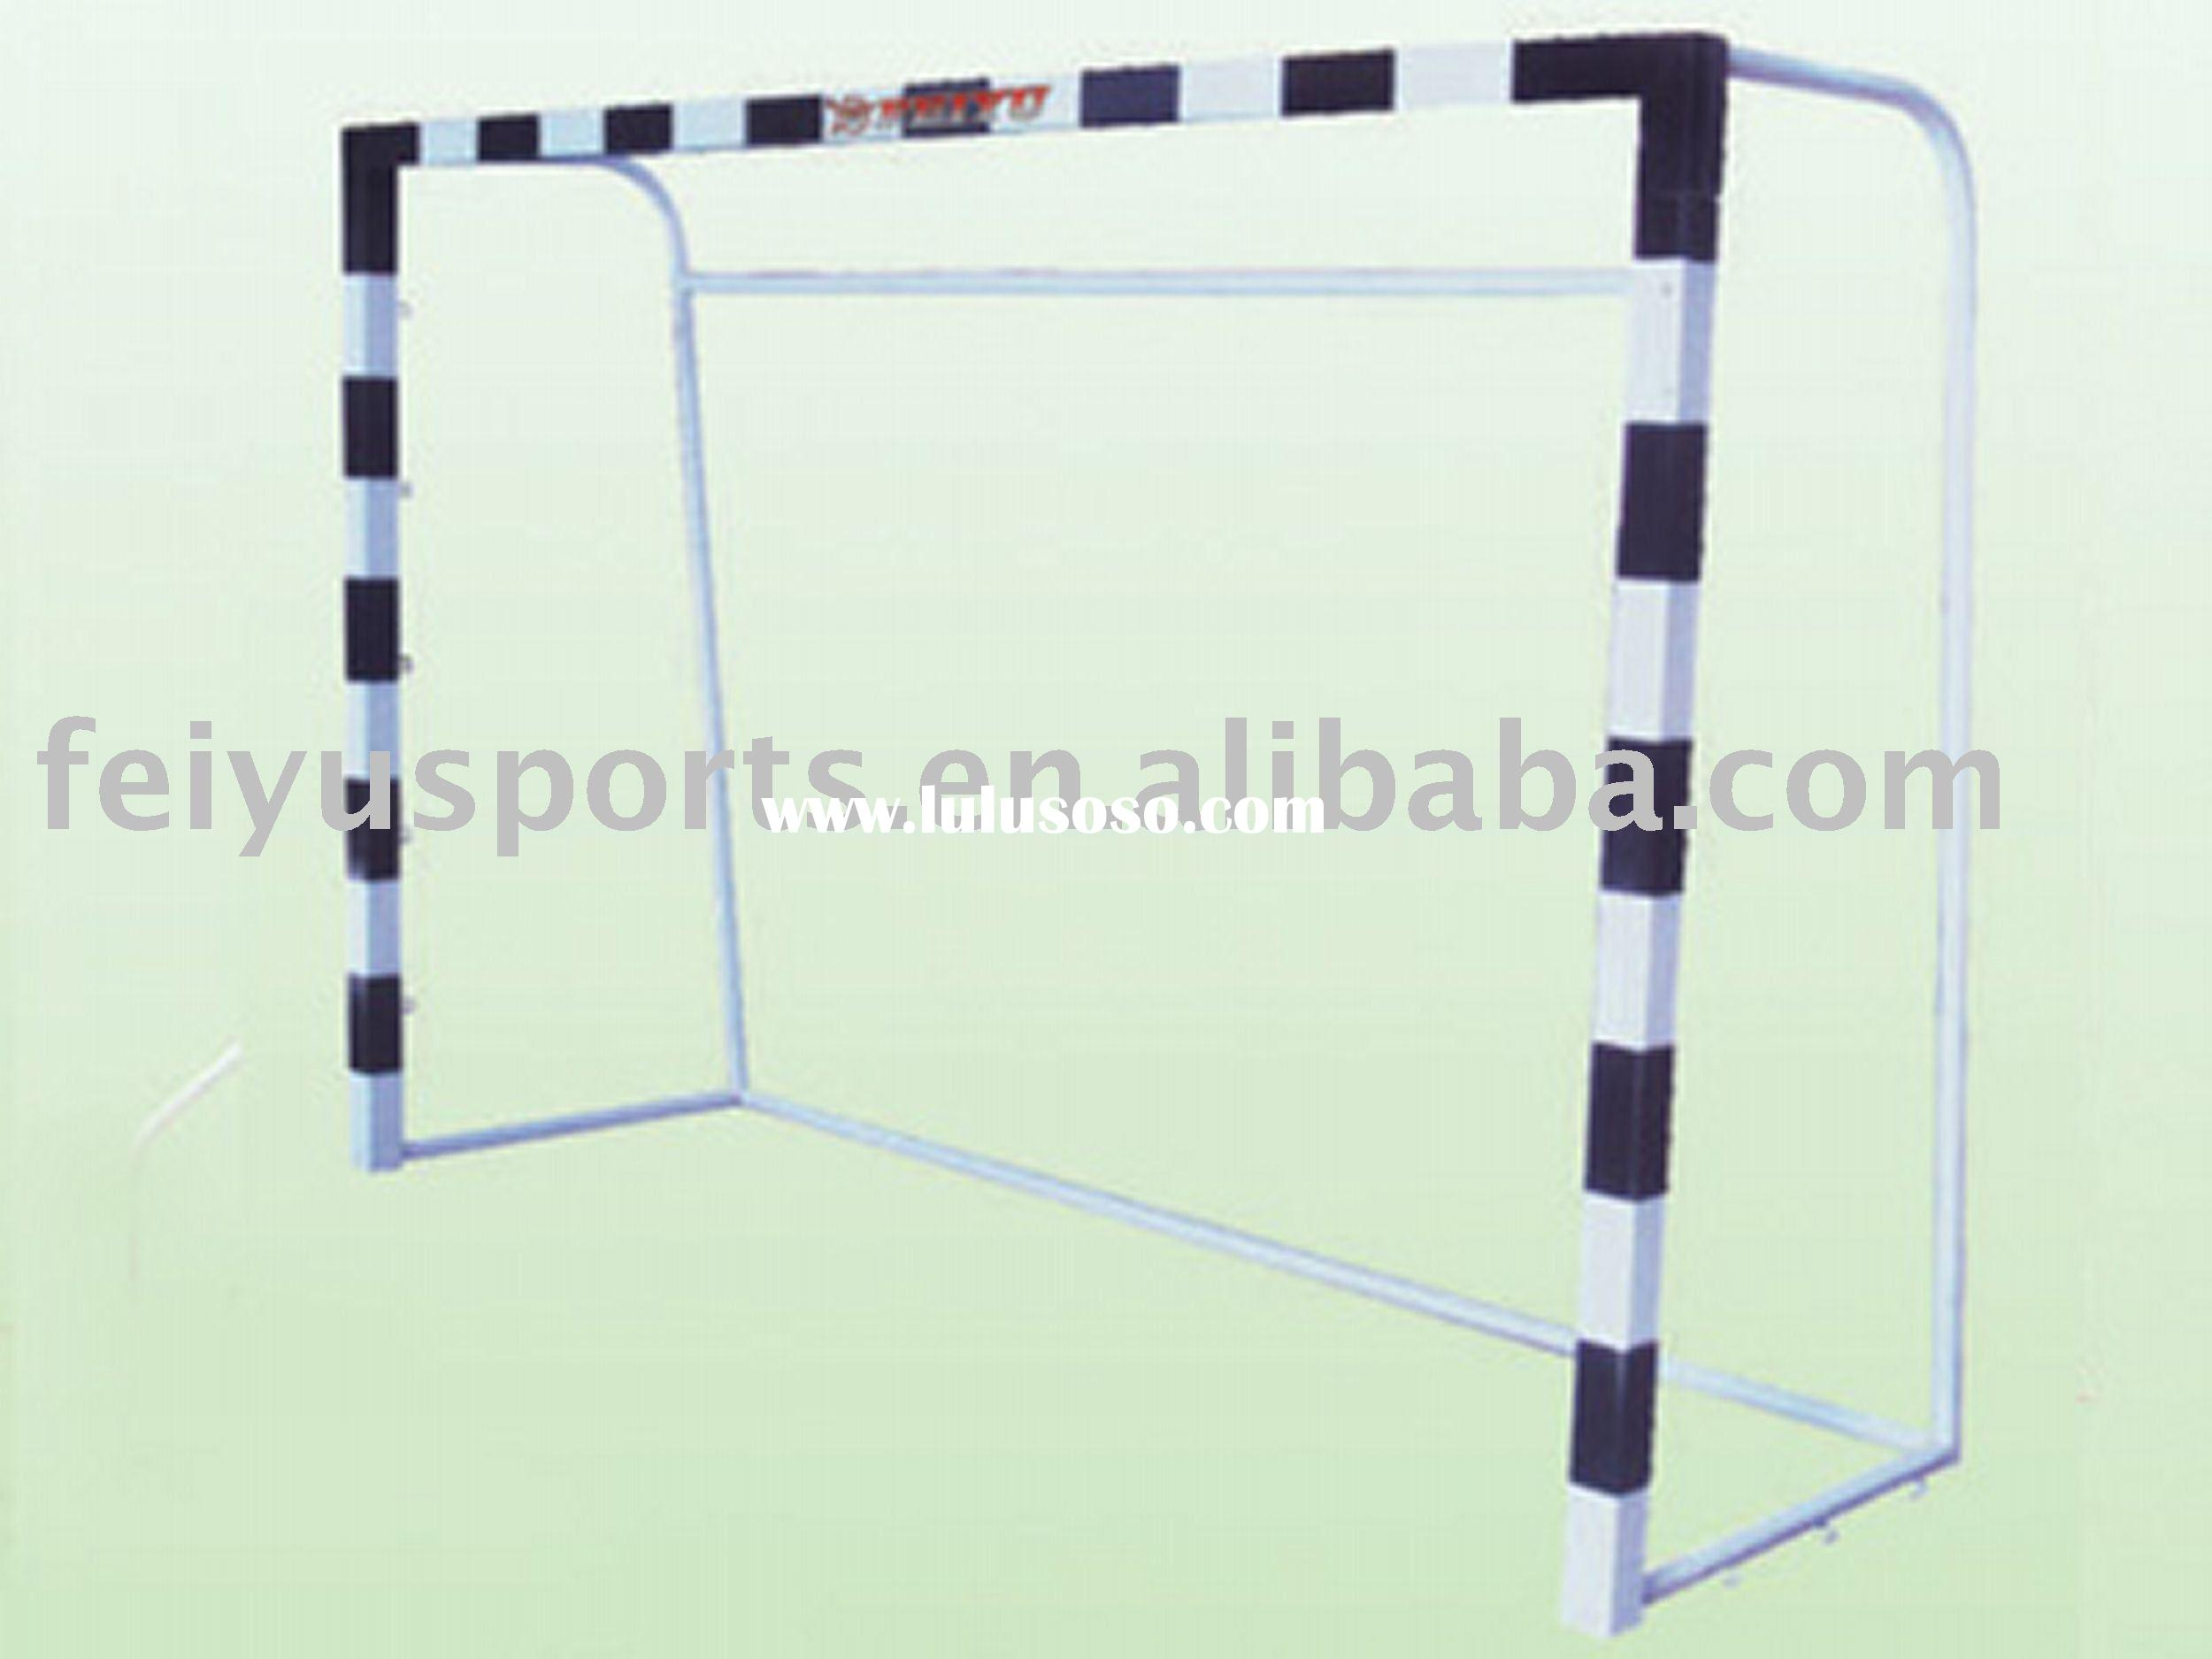 inflatable hockey net inflatable hockey net manufacturers in page 1. Black Bedroom Furniture Sets. Home Design Ideas